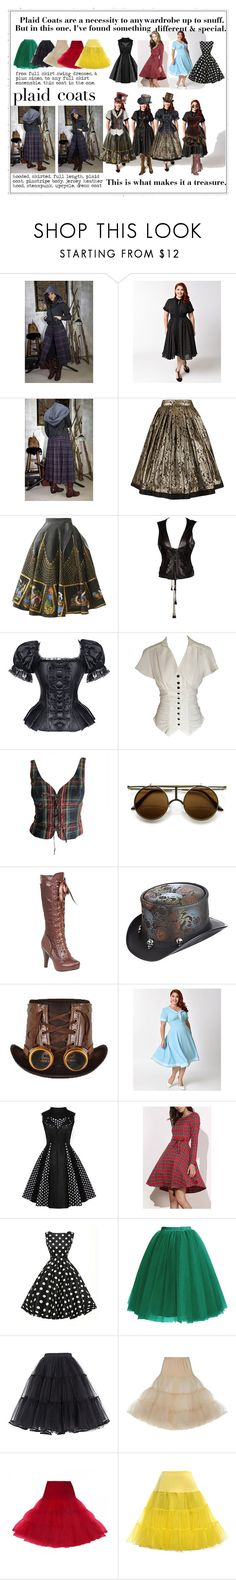 """plaid coat, but different...etsy"" by caroline-buster-brown ❤ liked on Polyvore featuring Versace, Gianfranco Ferré, Moschino, ZeroUV, Buy Seasons, Overland Sheepskin Co., Hell Bunny and plus size dresses"